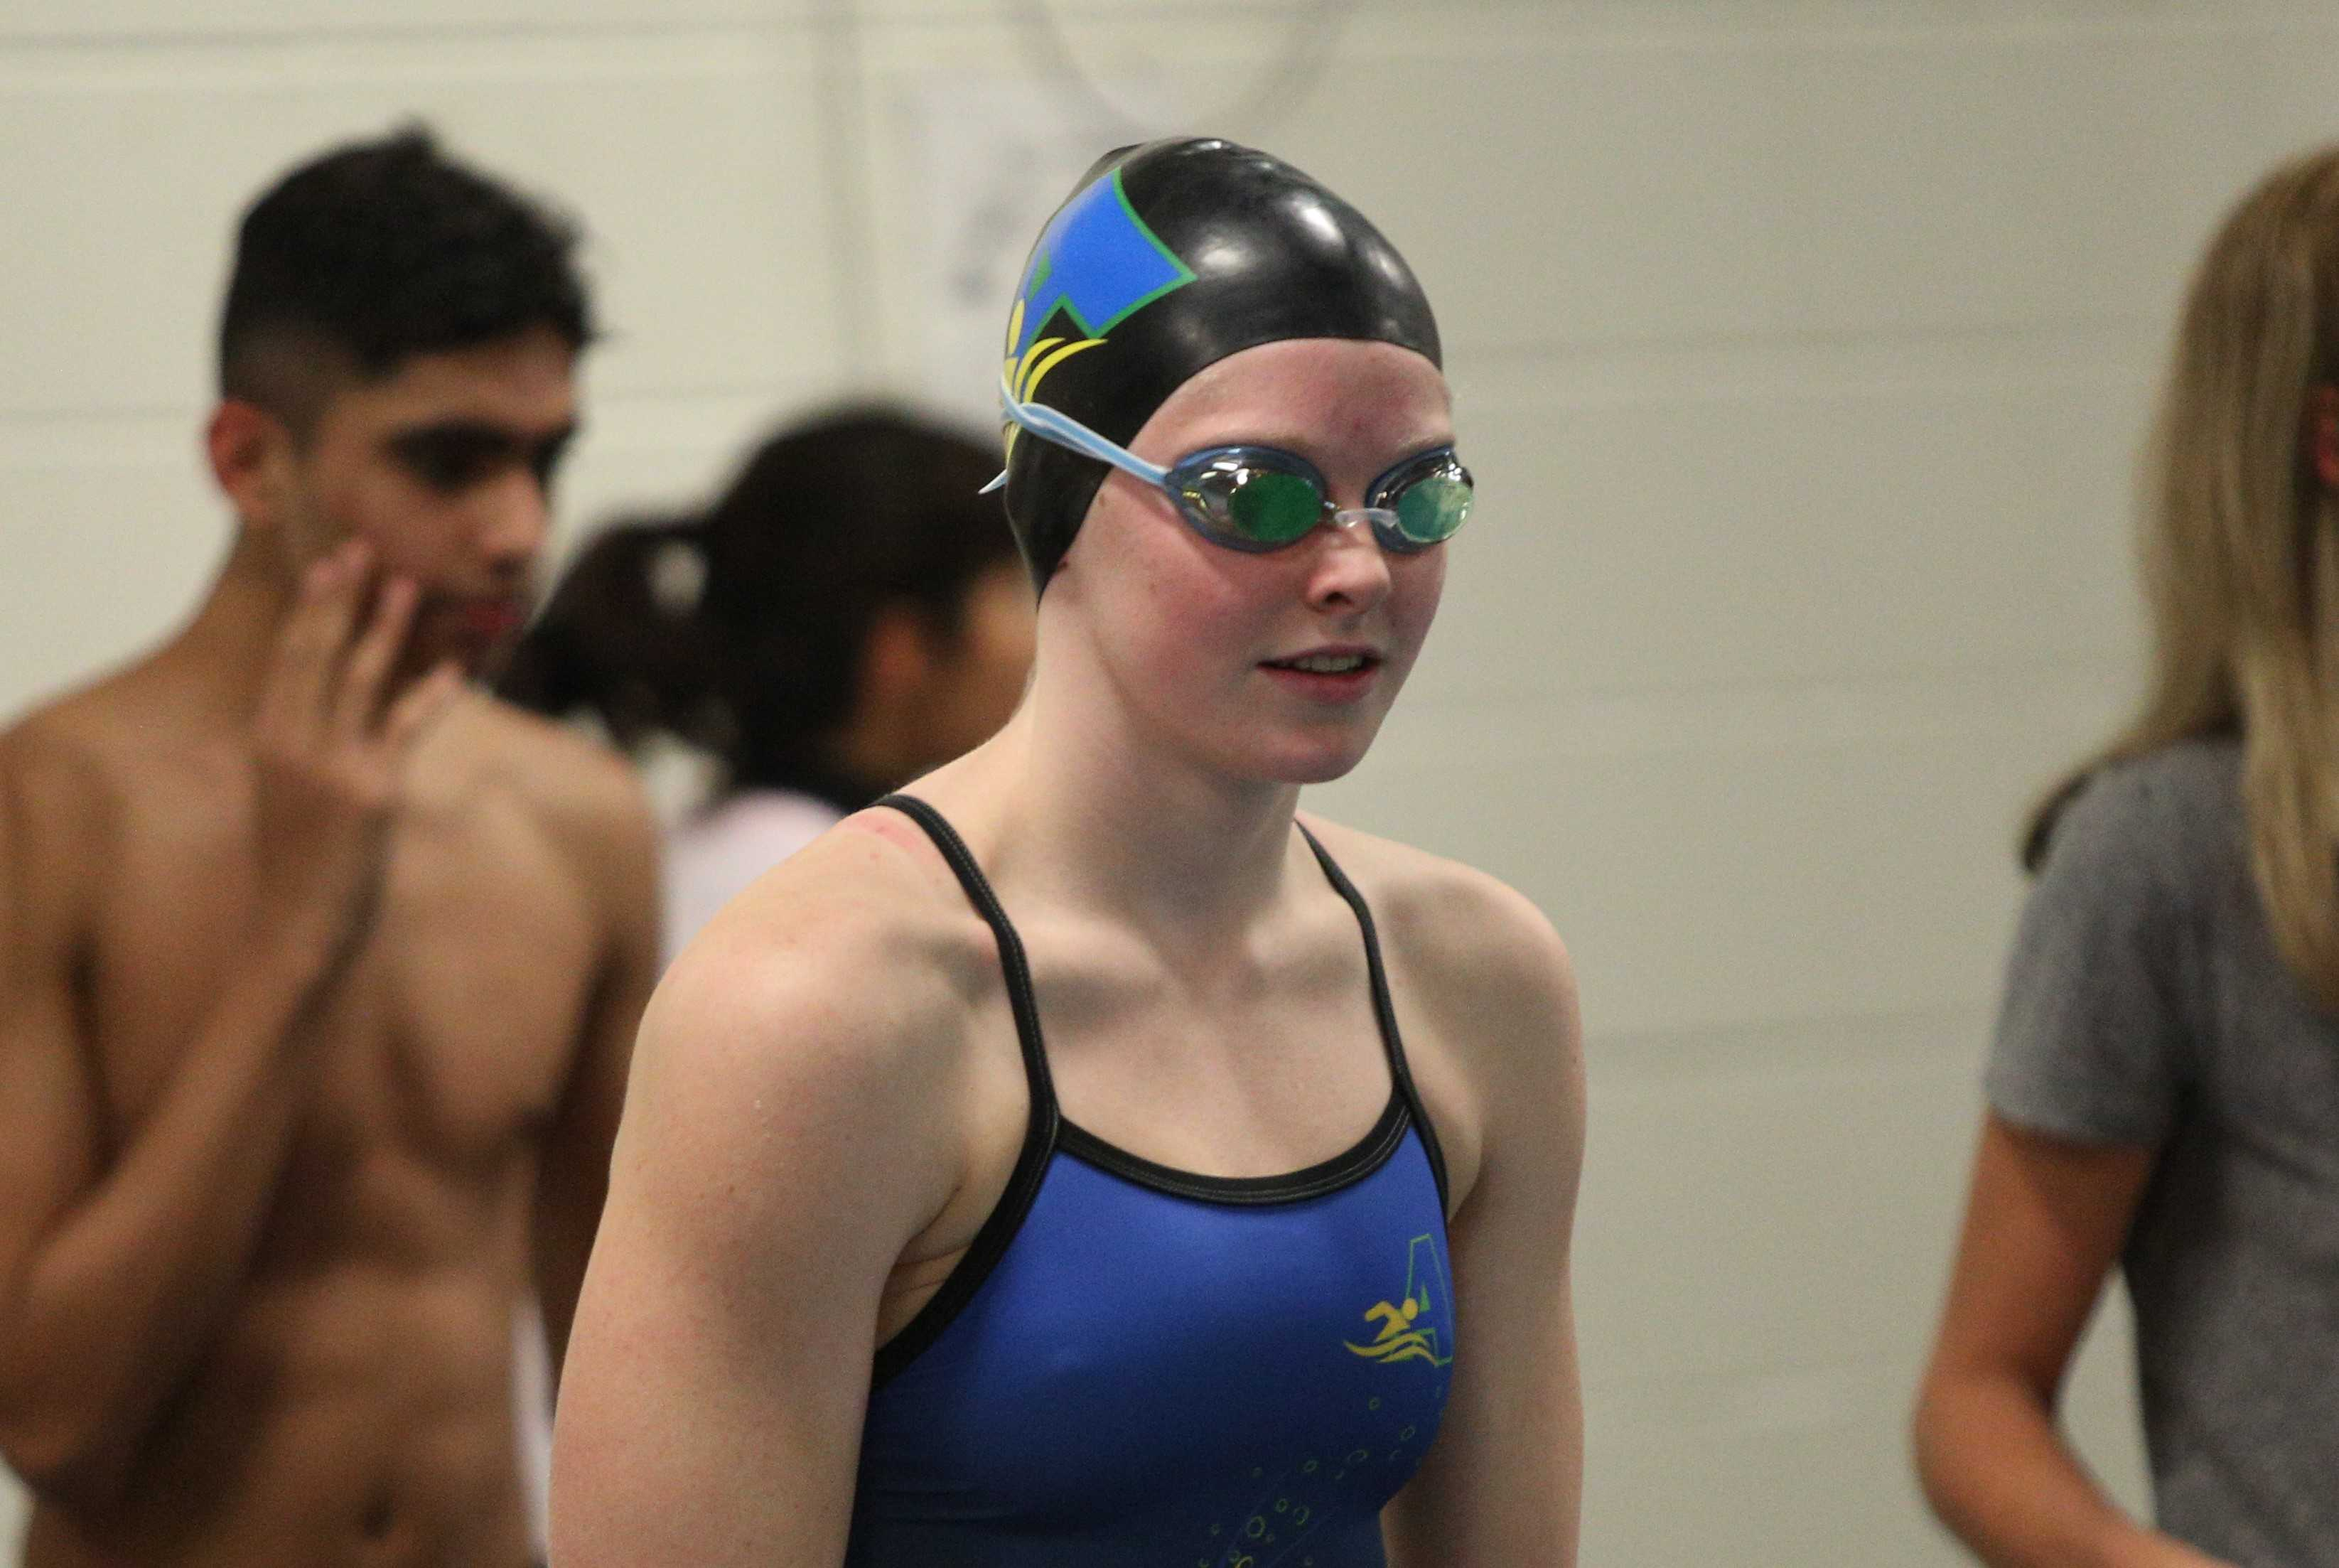 Kaitlin Dobler was ranked fourth in the nation in the breaststroke entering the long-course season. (Jim Newton Photography)